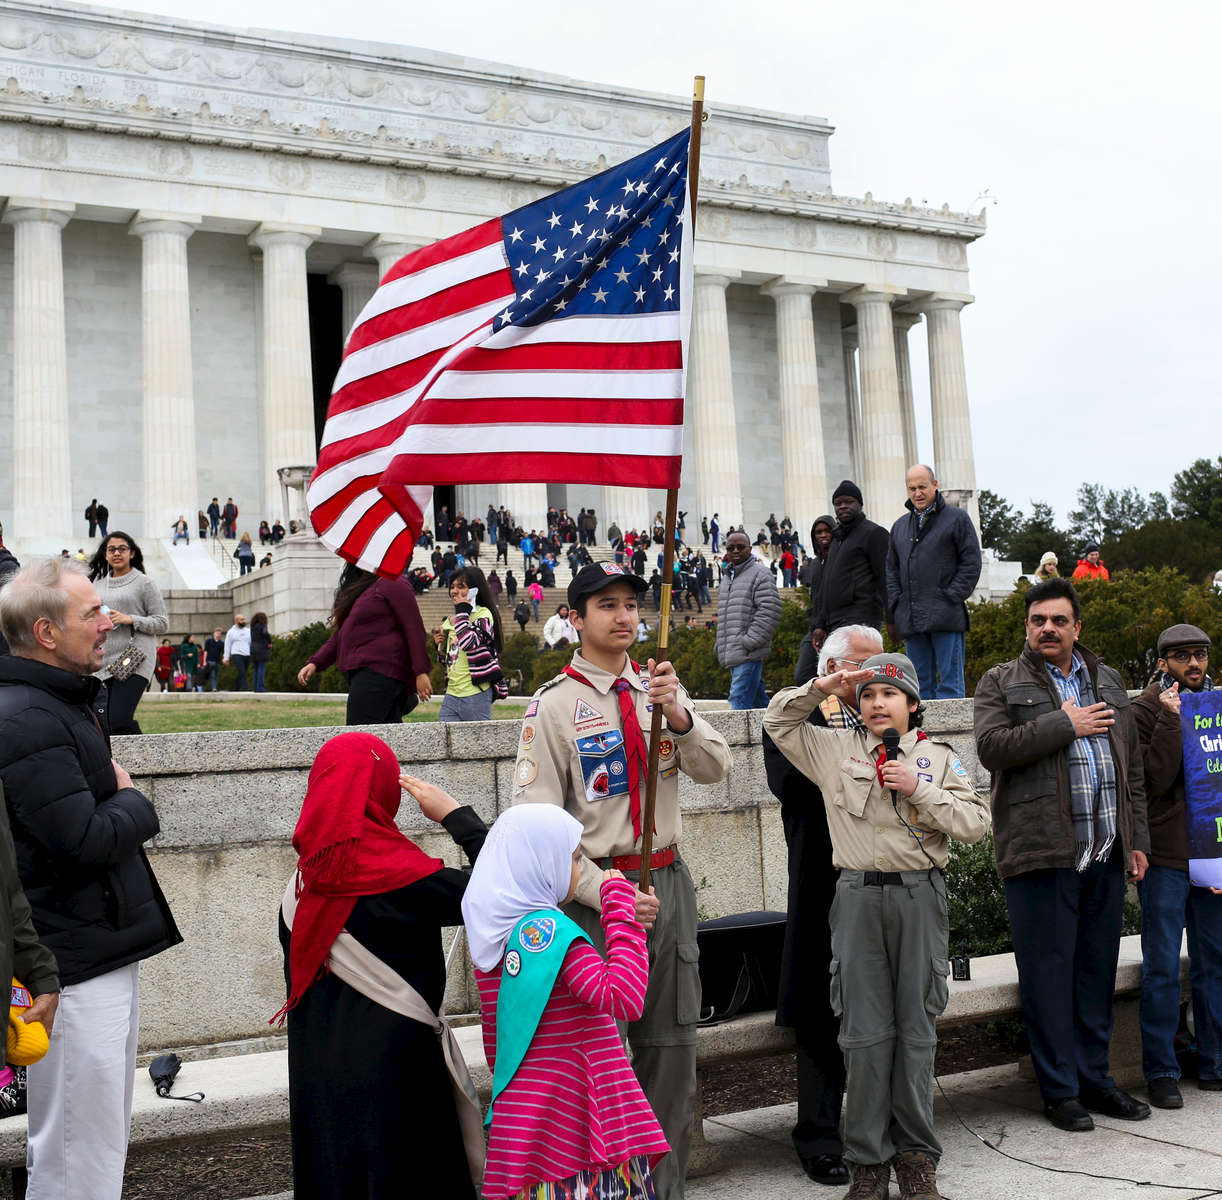 A Muslim boy scout carries the American flag as the Pledge of Allegiance is recited at an interfaith celebration of Christmas and Mawlid, an observance of the birthday of Prophet Muhammad, in front of the Lincoln Memorial in Washington, D.C., Saturday, December 26, 2015. The event, organized by the American Muslim Institution and ADAMS Center, included singing Christmas carols and songs about Prophet Muhammad.